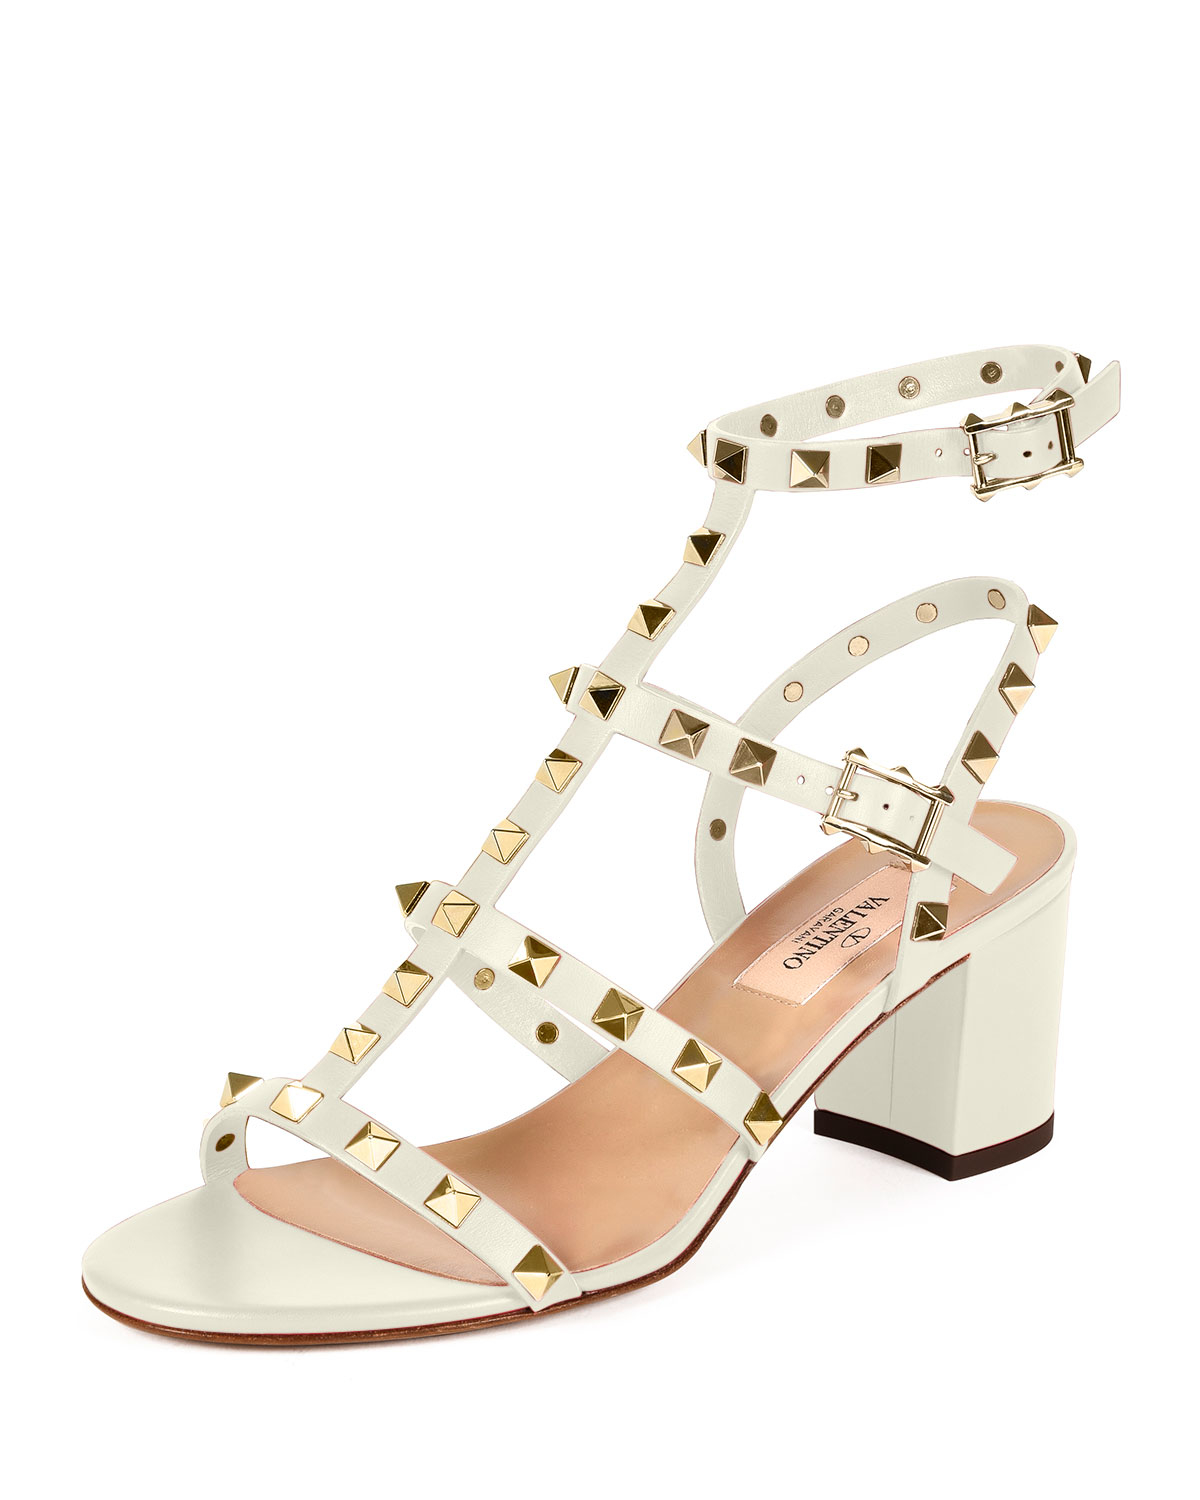 Valentino White Rockstud Leather Sandals discount very cheap free shipping geniue stockist deals sale online latest sale online cdIULQE